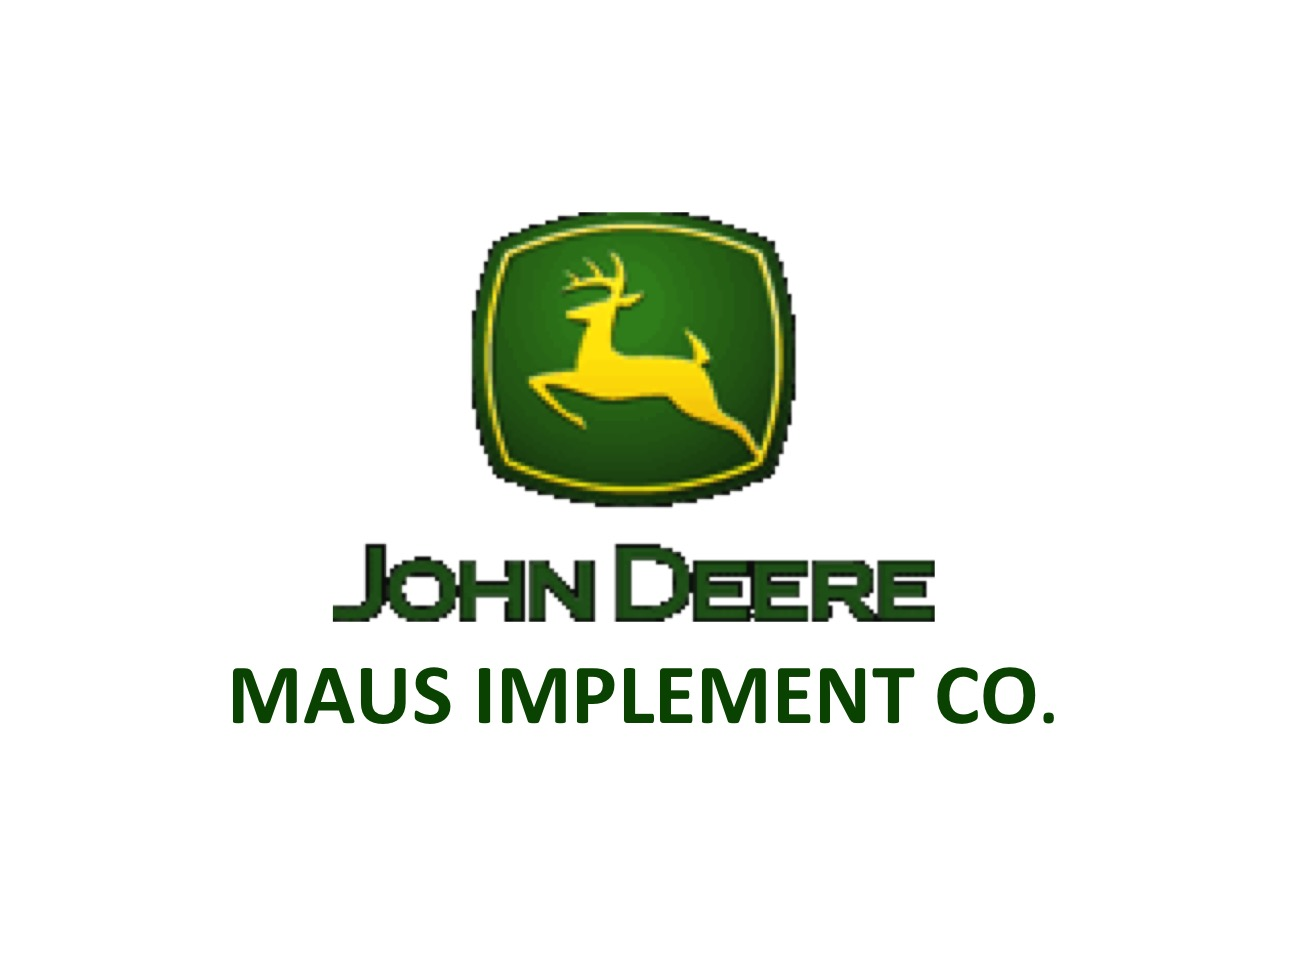 MAUS IMPLEMENT